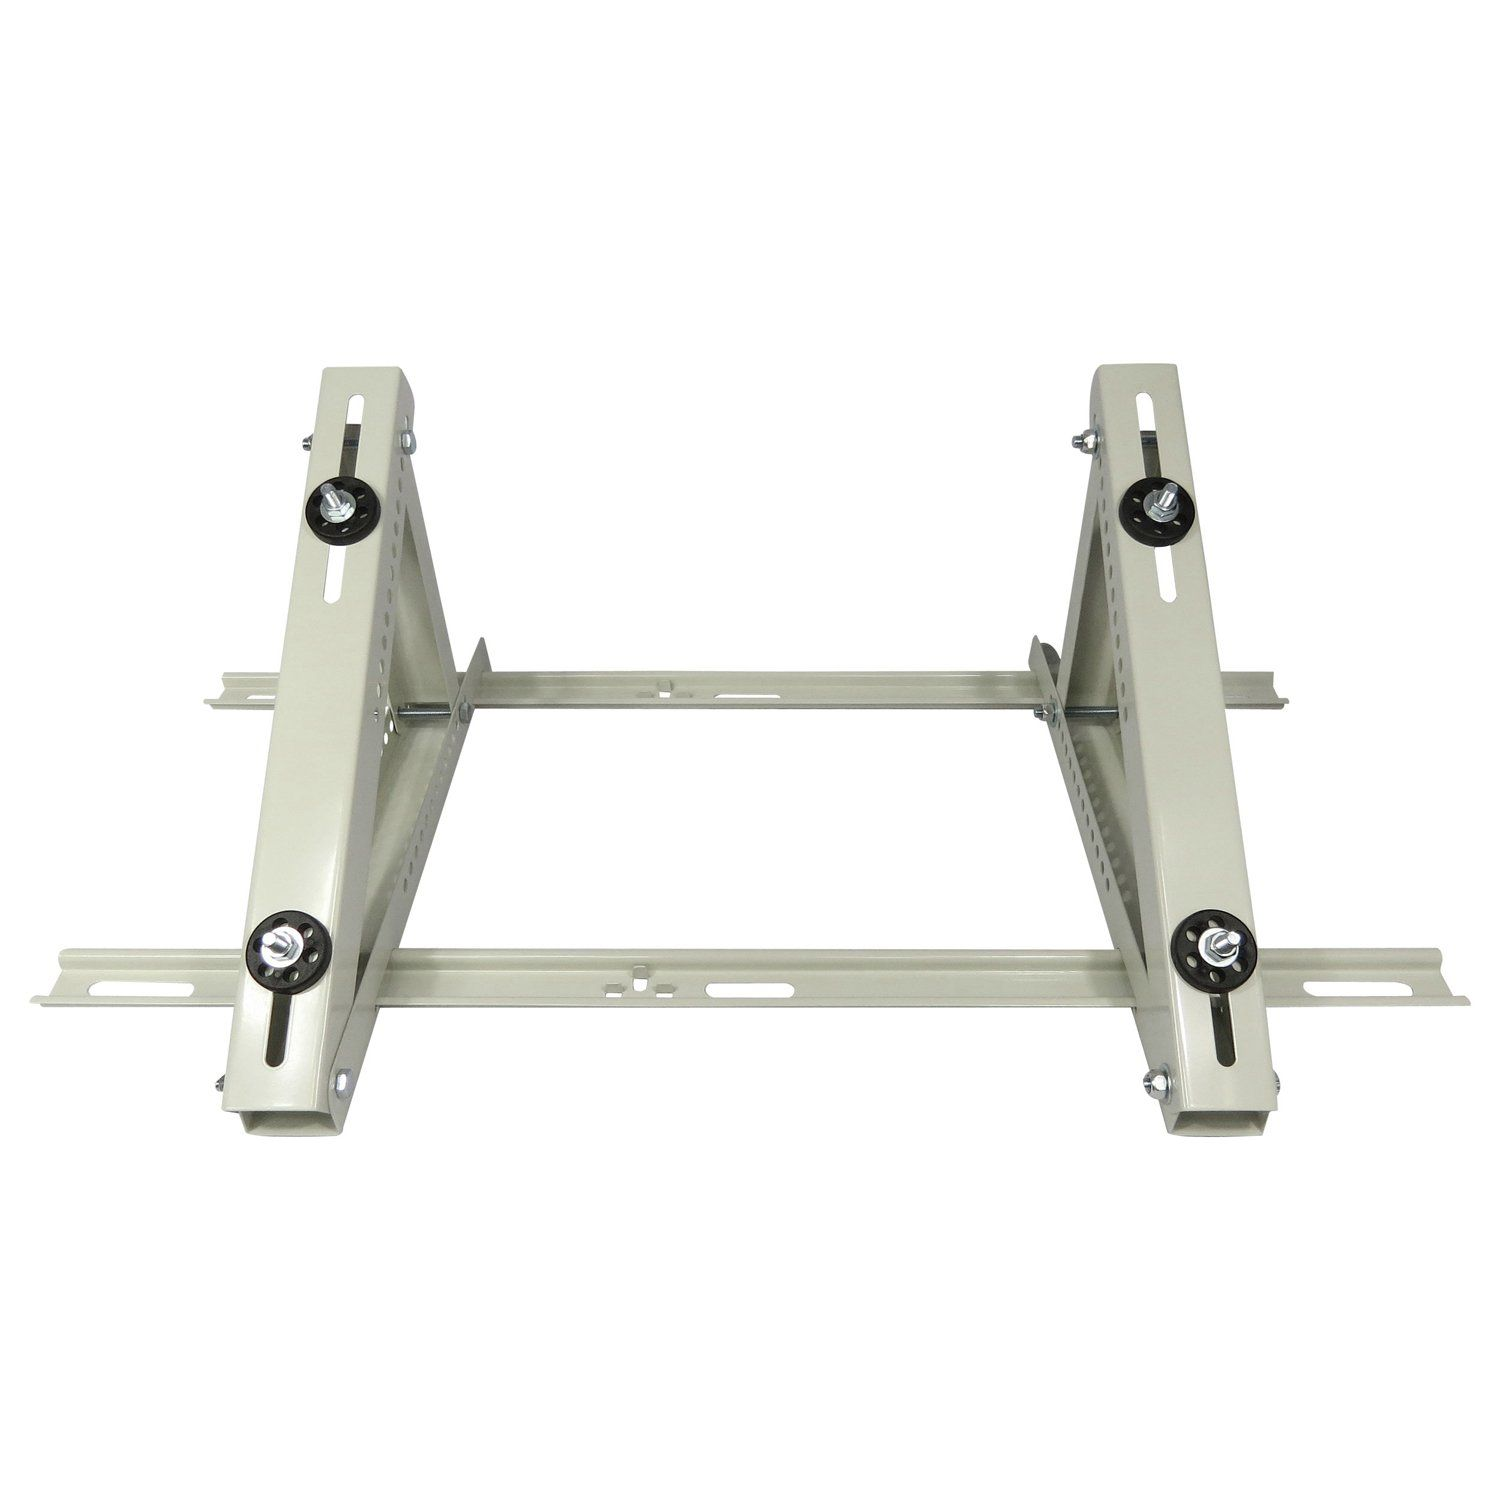 Roof Mini Split Wall Bracket Ductless Heat Pump Support Condenser Mounting Rack For Air Conditioner P Ductless Heat Pump Room Air Conditioners Wall Brackets